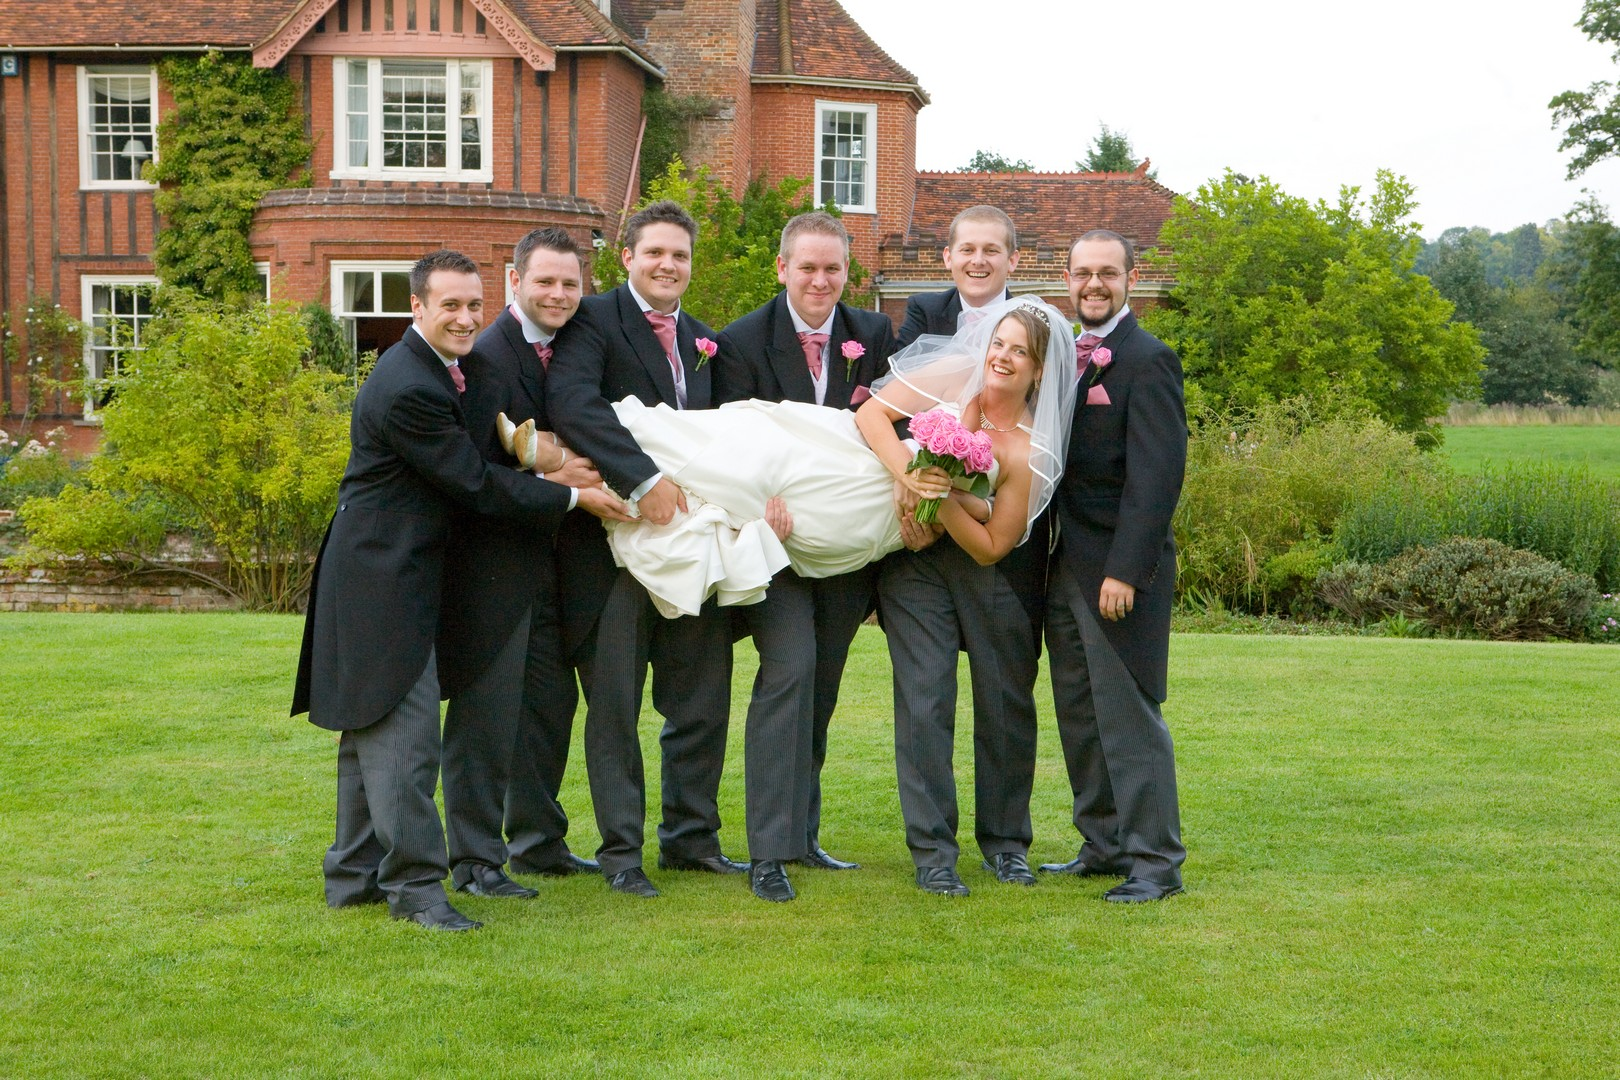 Wedding Photography - Evermore Photography